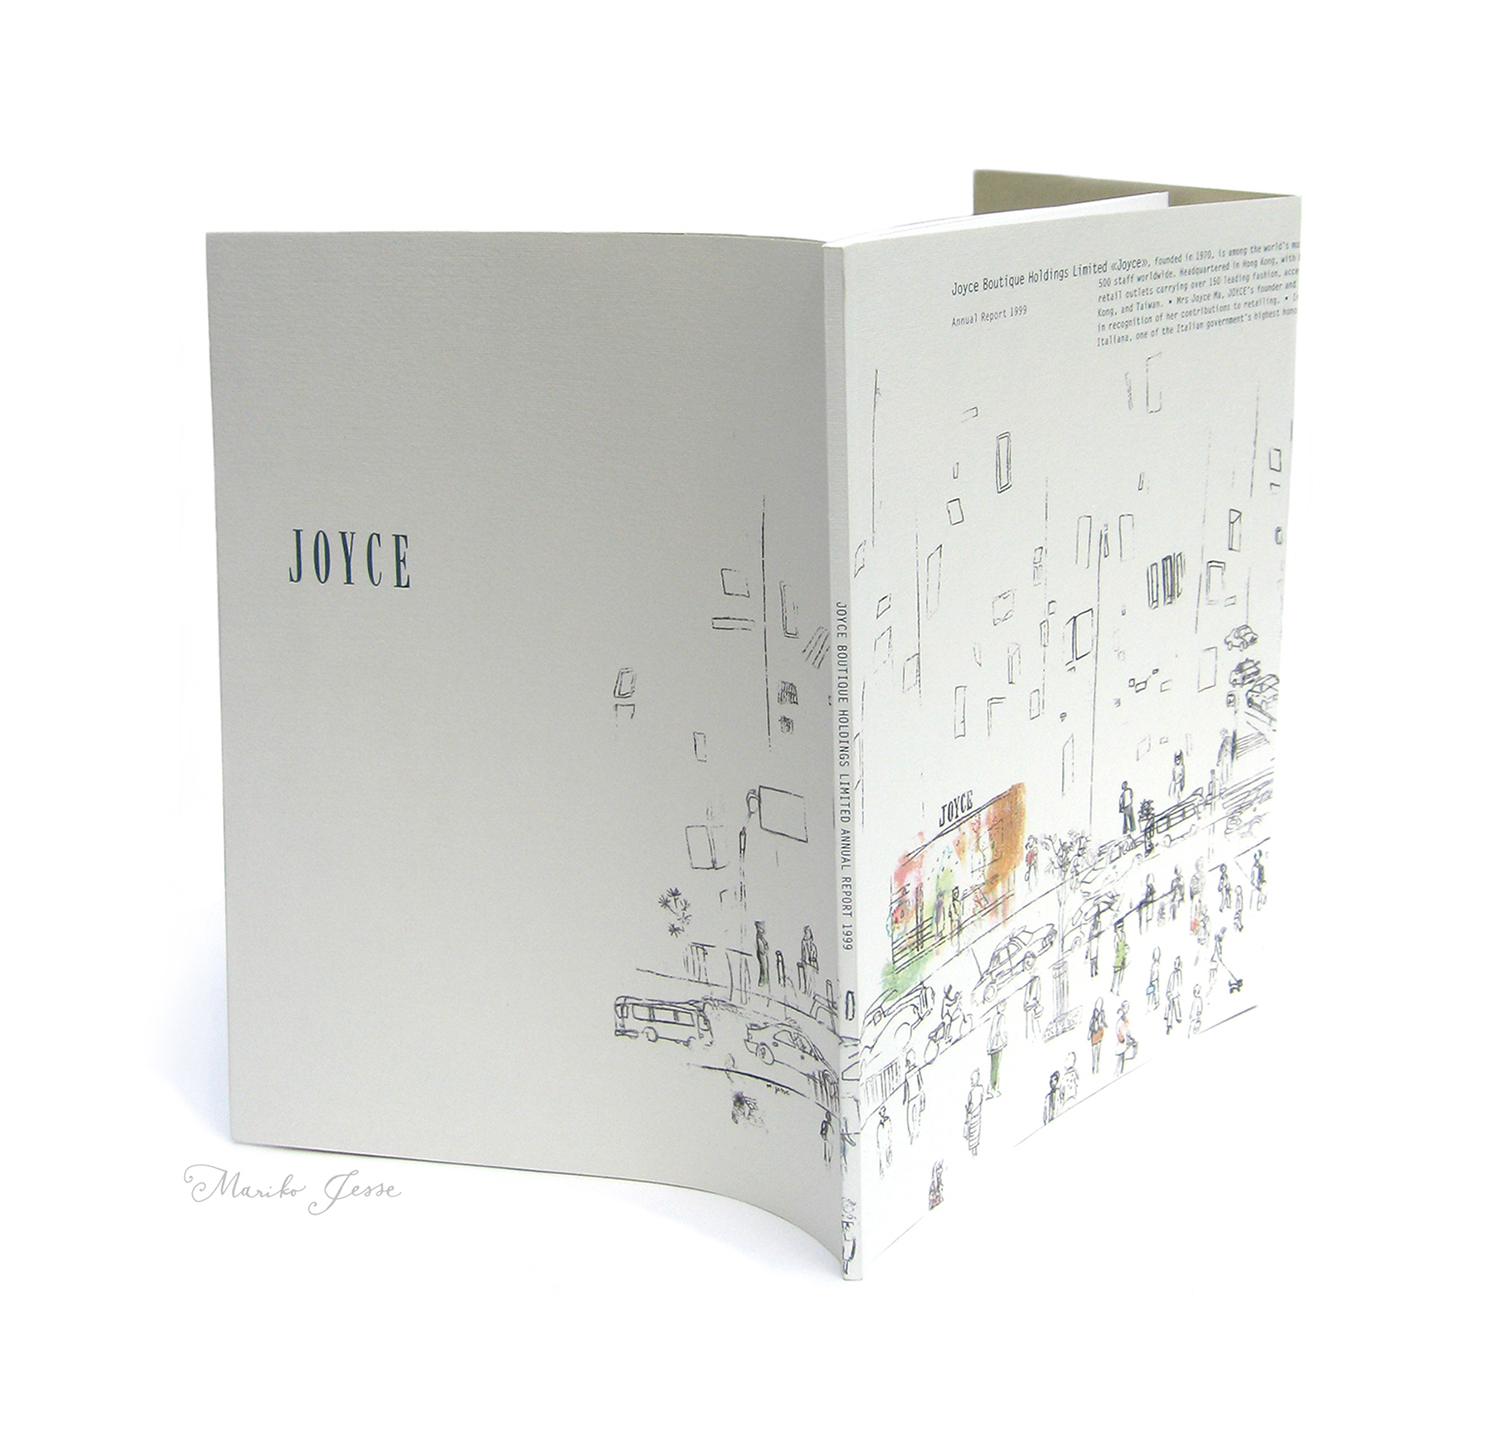 JOYCE annual report